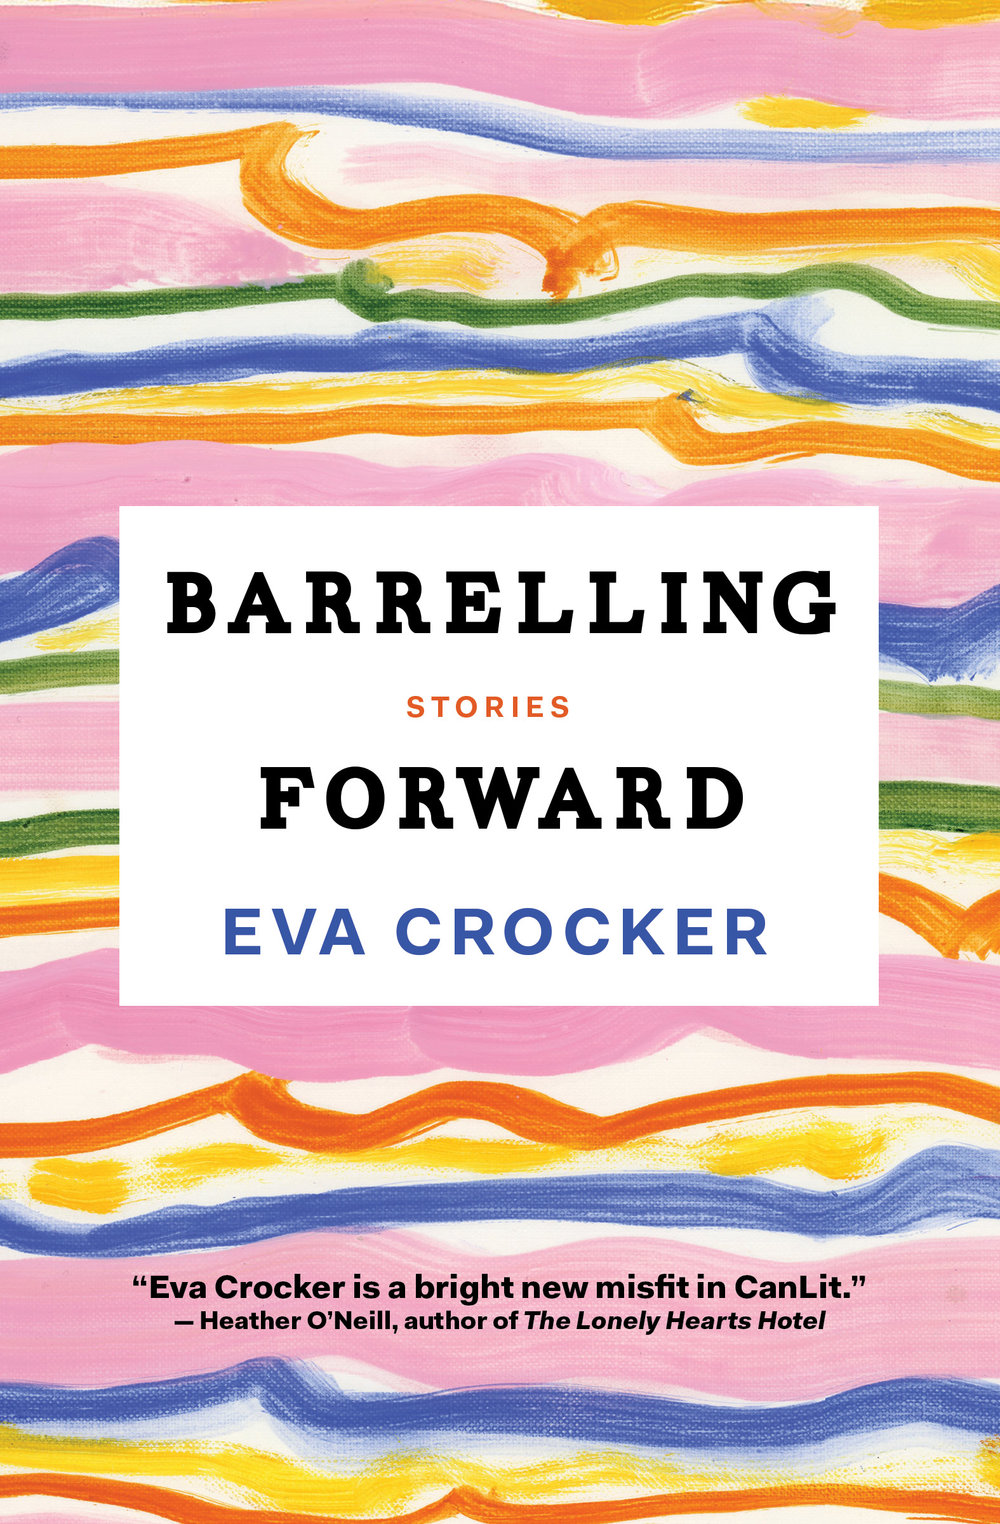 Eva Crocker.  Barrelling Forward . House of Anansi. $19.95, 264 pp., ISBN: 9781487001438